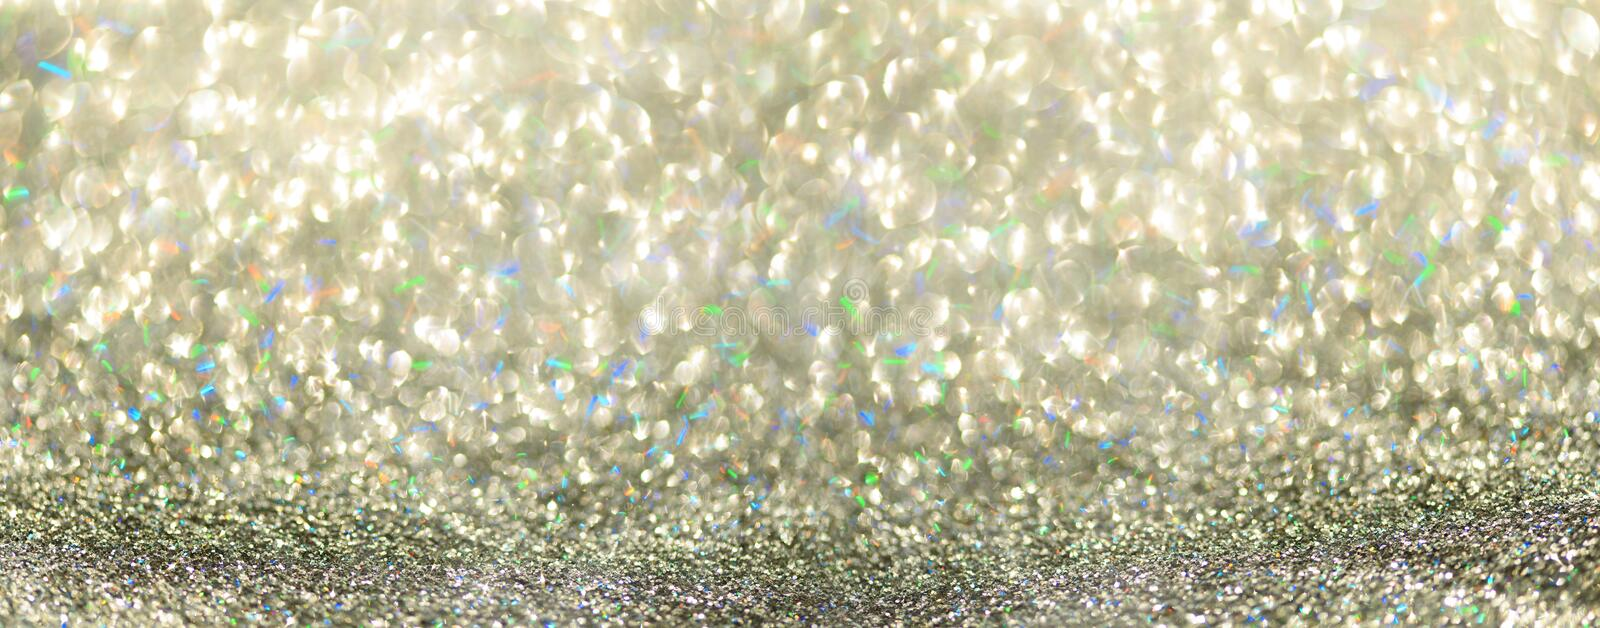 Colorful glitter banner with lights, bokeh. Shiny festive greeting card. New year and Christmas concept. Sparkling textured stock photos